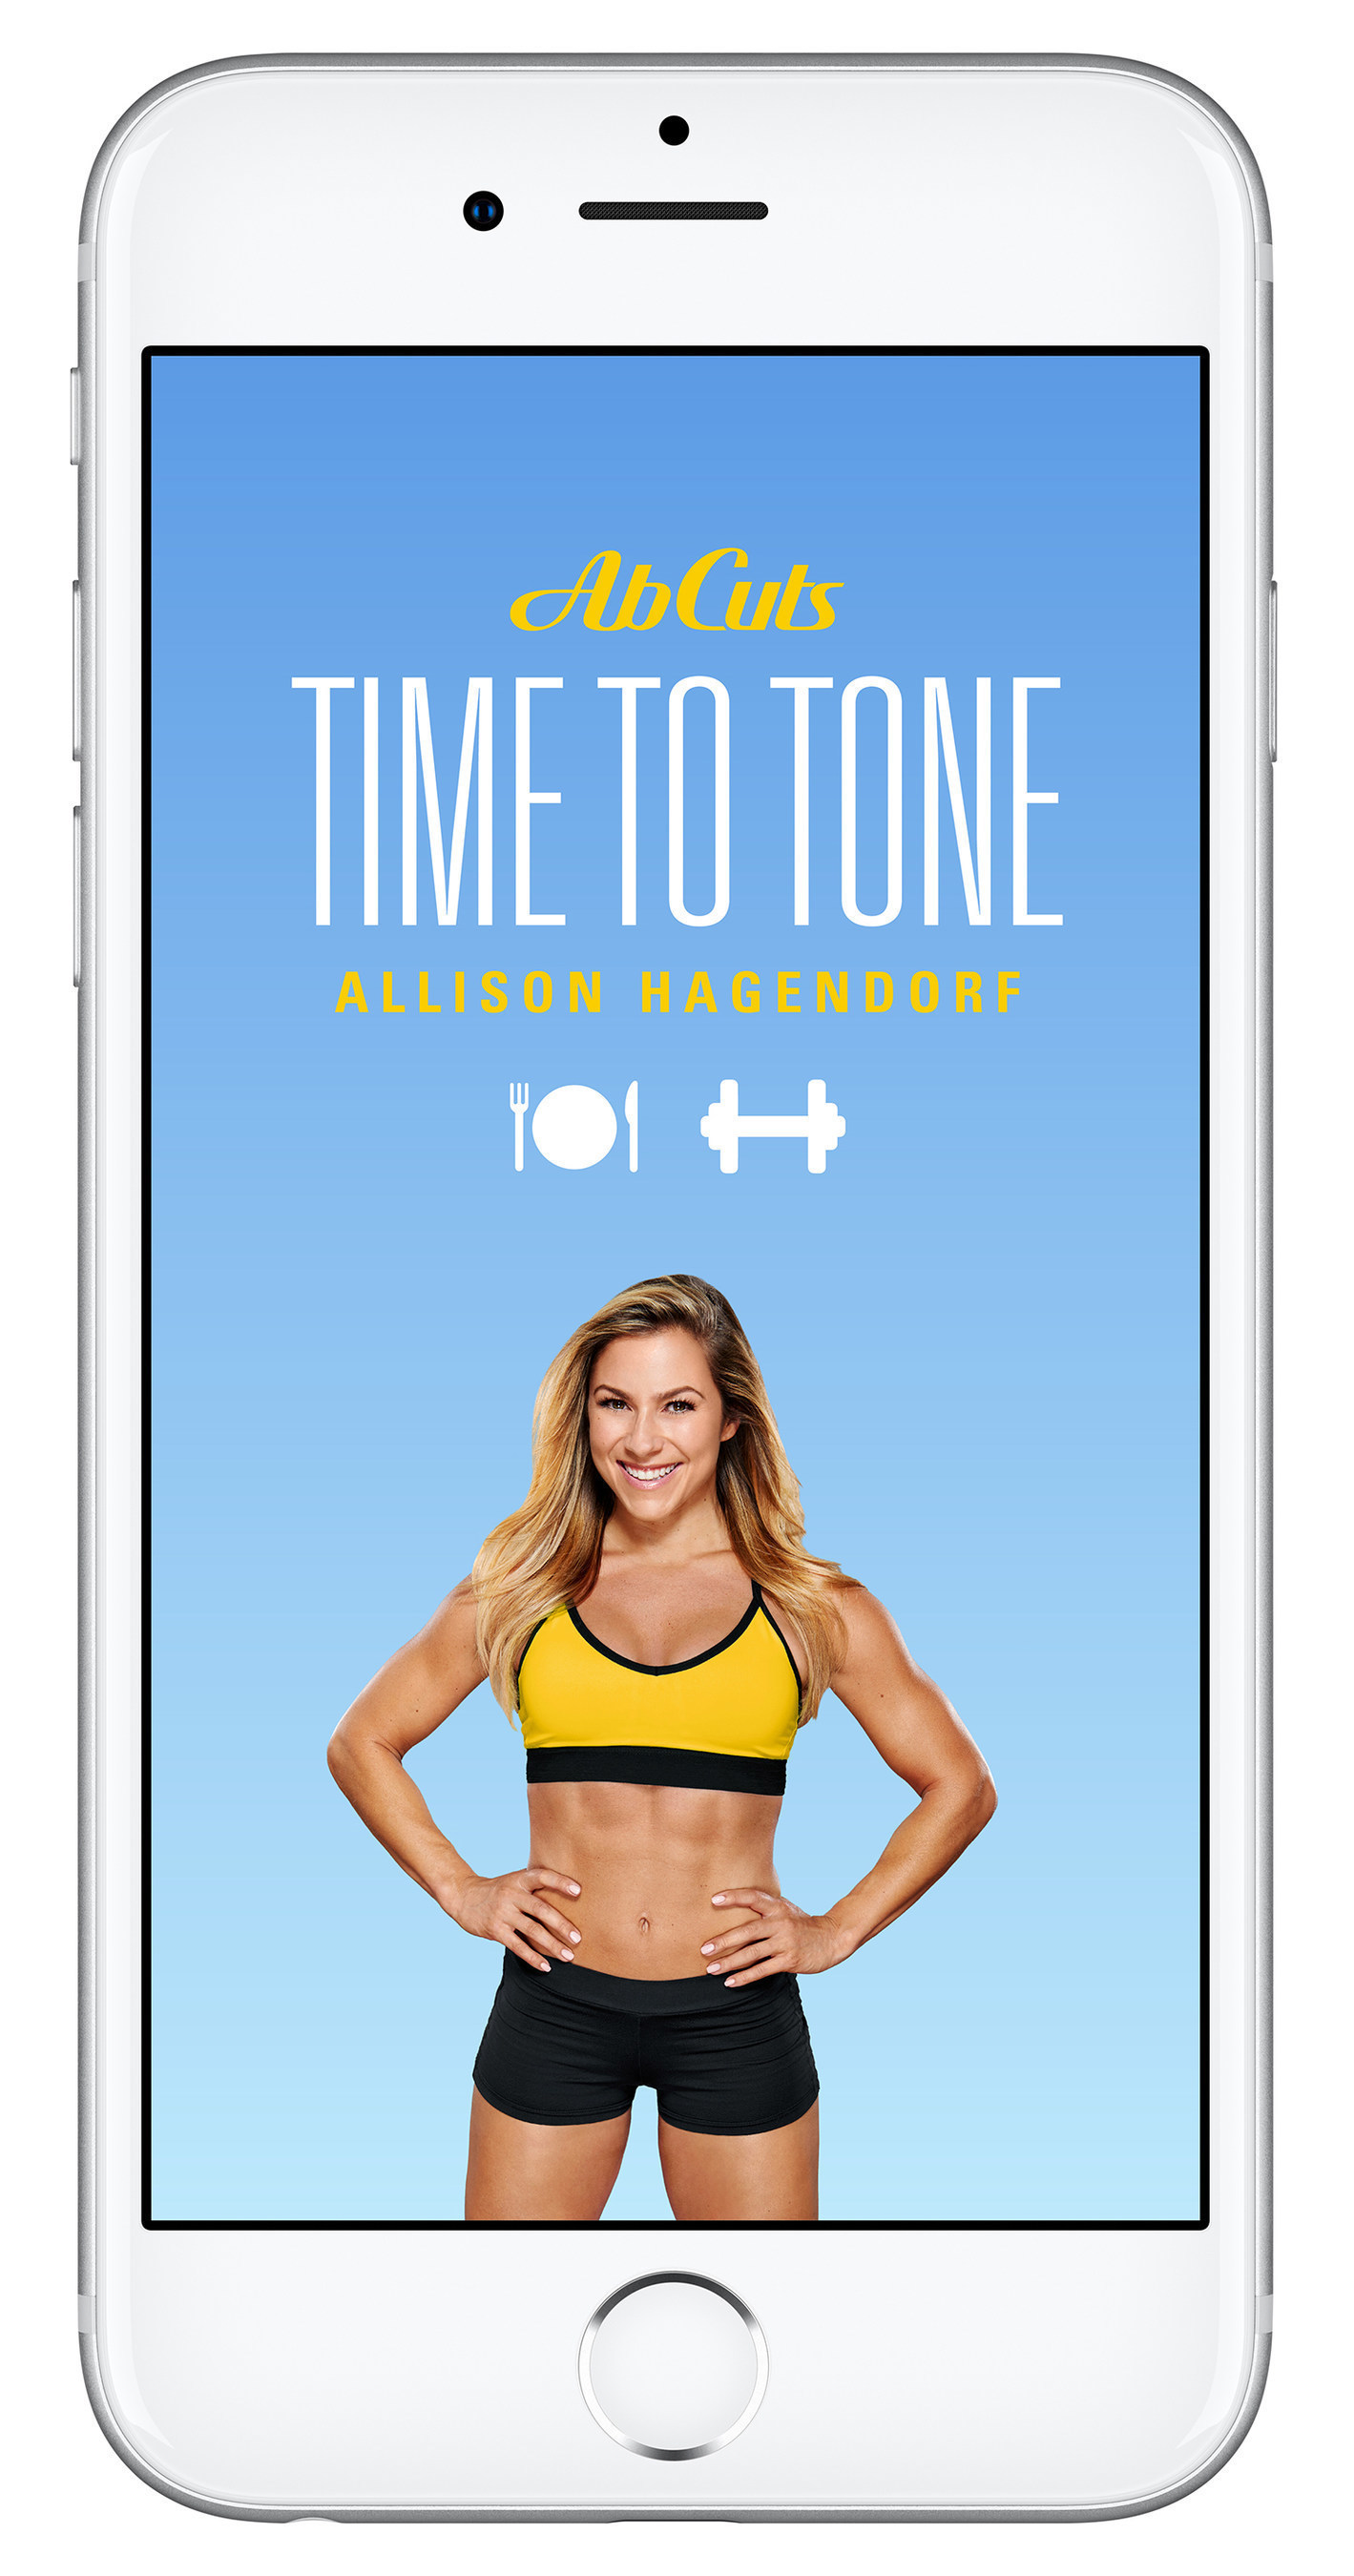 Anytime. Anywhere. It's 'Time to Tone' with New Health & Fitness App